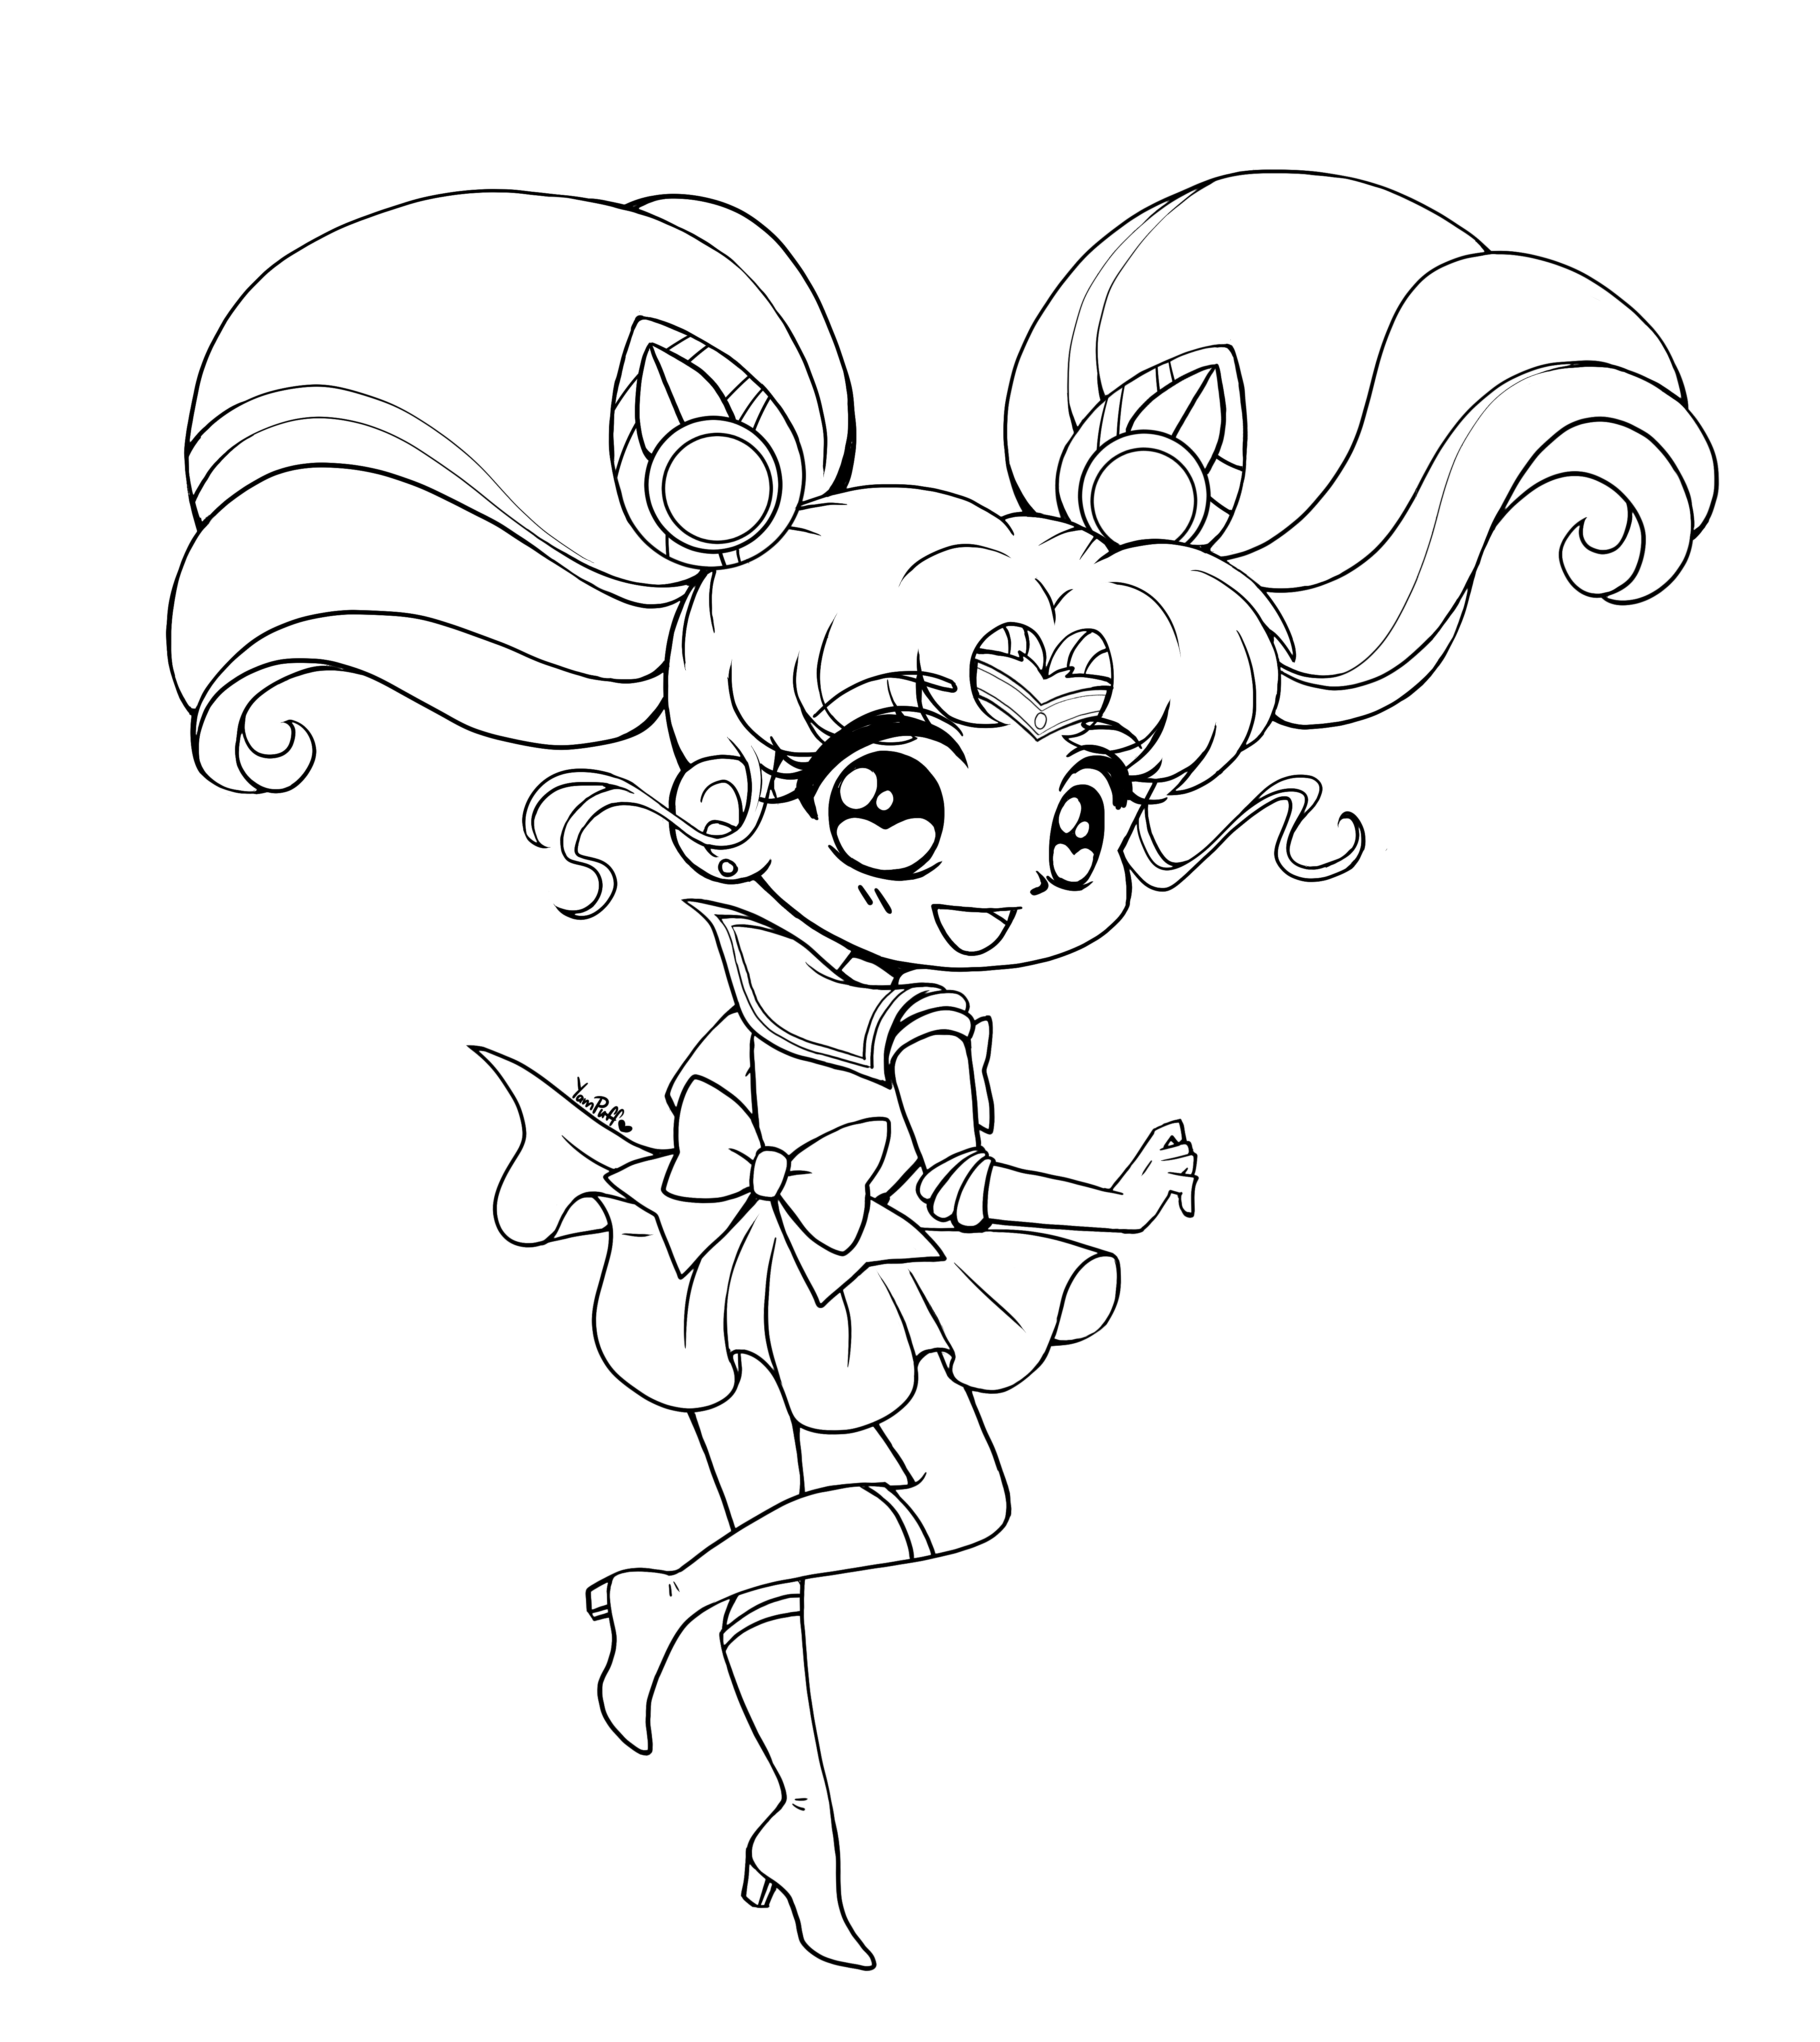 SAILOR MOON coloring pages - Coloring pages - Printable Coloring ... | 5144x4584